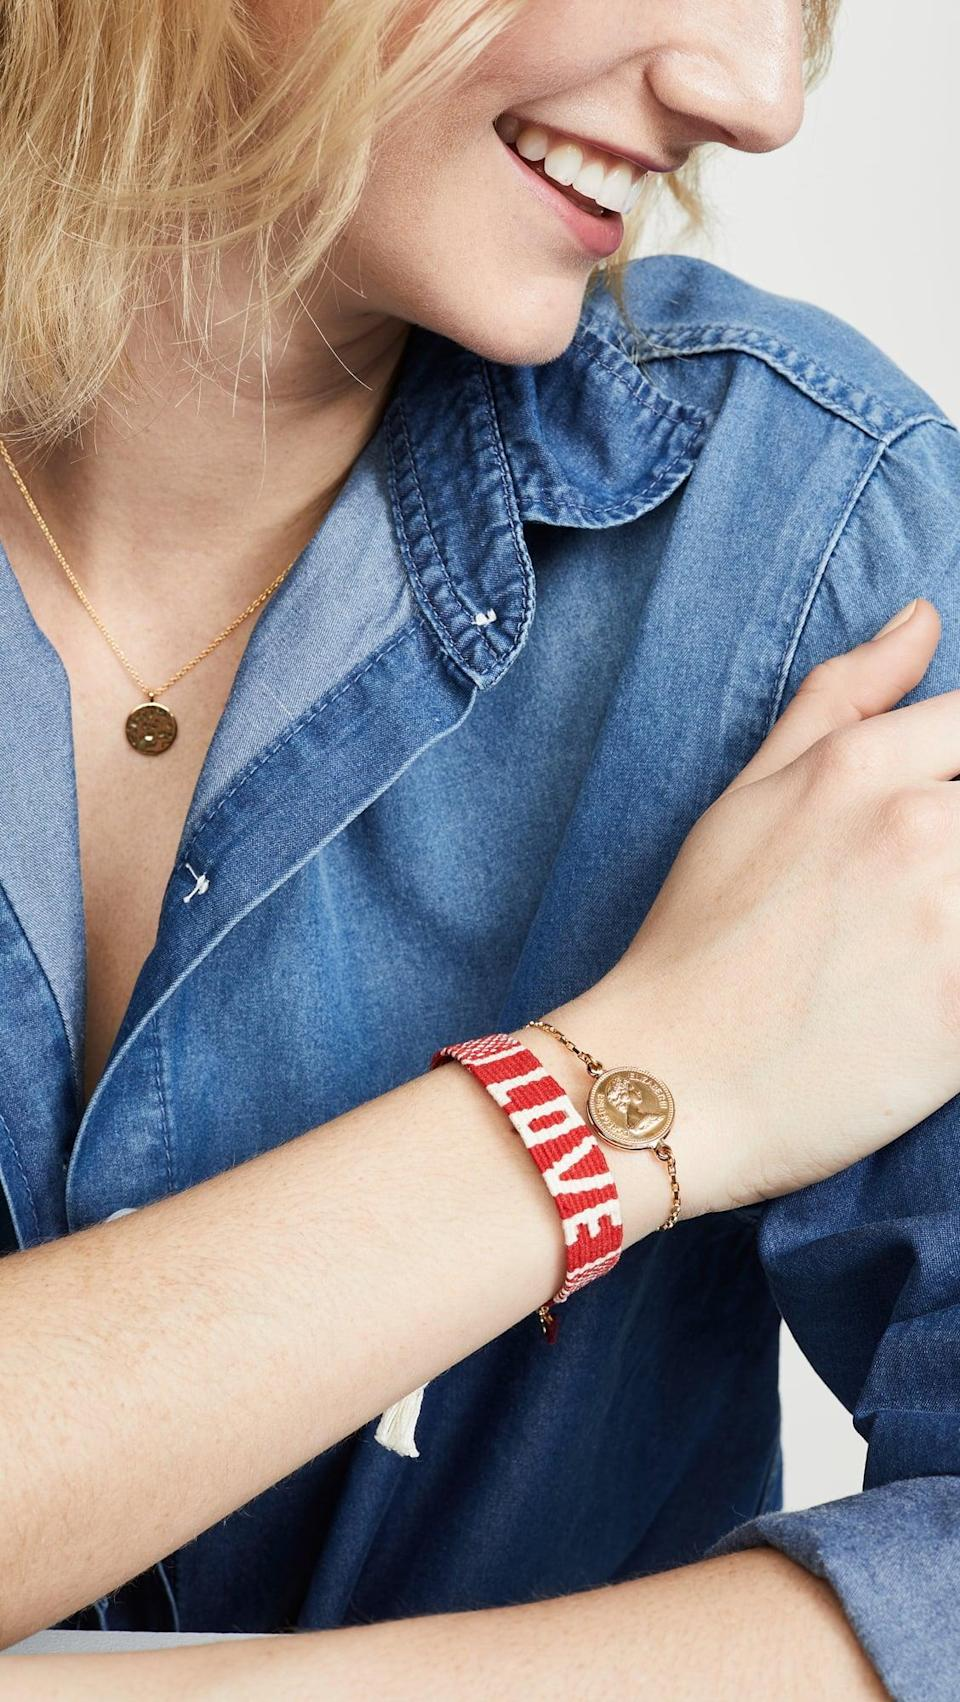 <p>Wear this <span>Maison Irem Mantra Woven Bracelet</span> ($35) everyday to remind yourself that you're loved.</p>